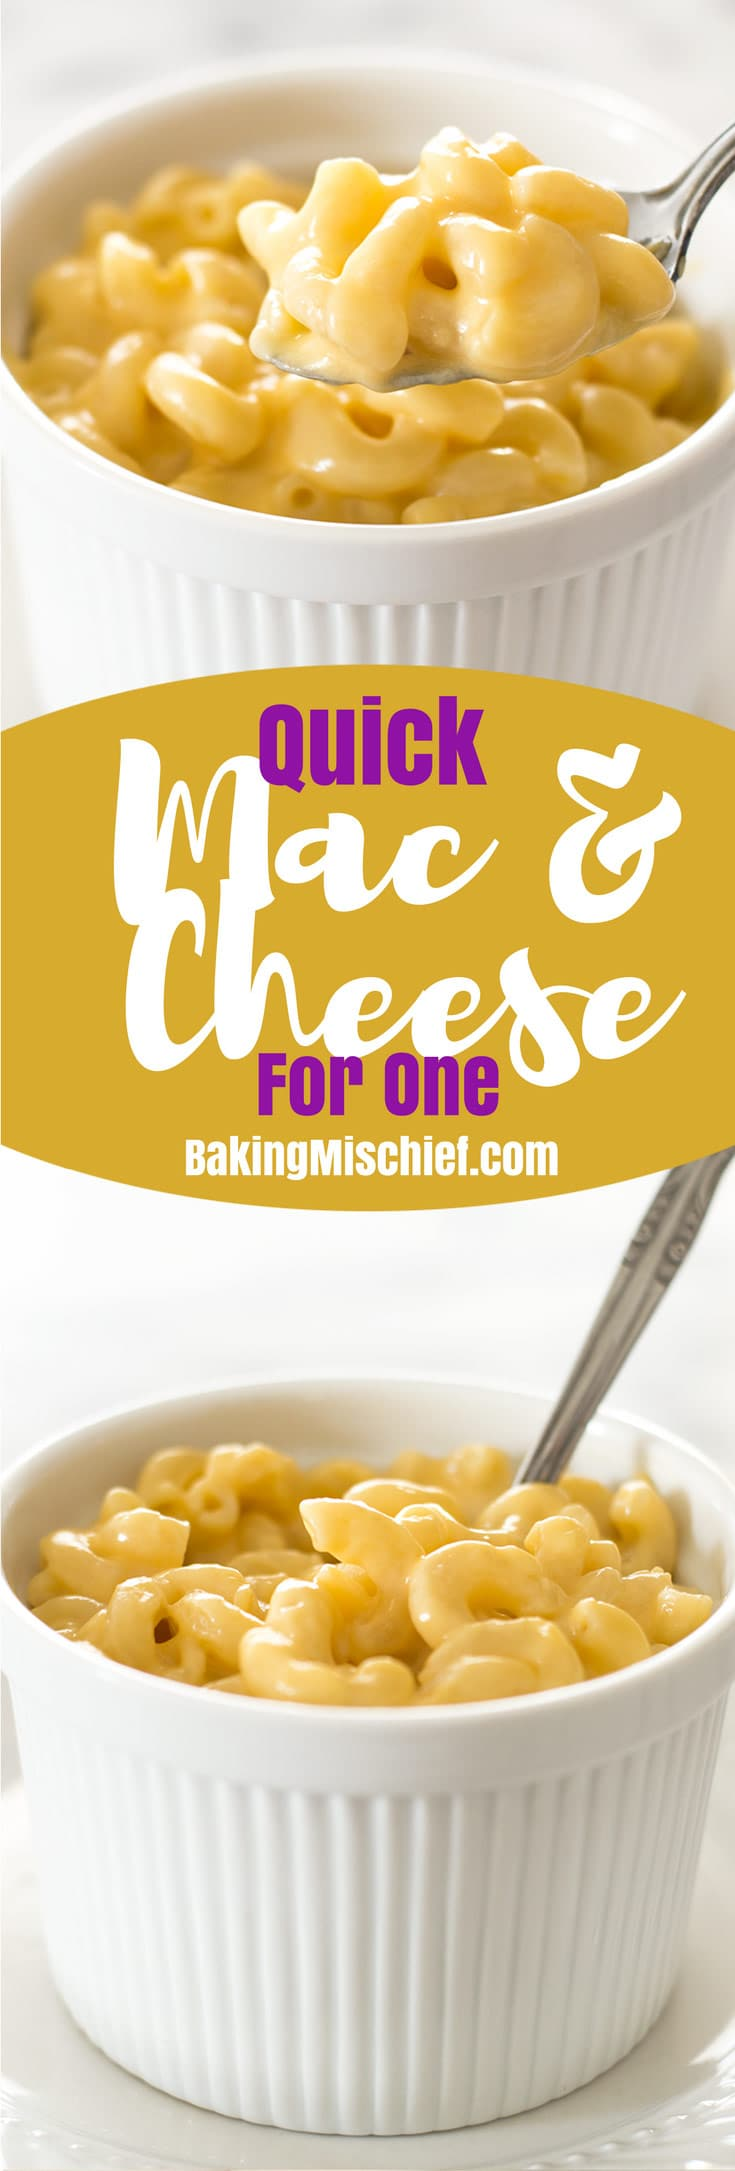 Quick mac and cheese for one baking mischief a quick recipe for mac and cheese for one easy cheesy and oh forumfinder Images